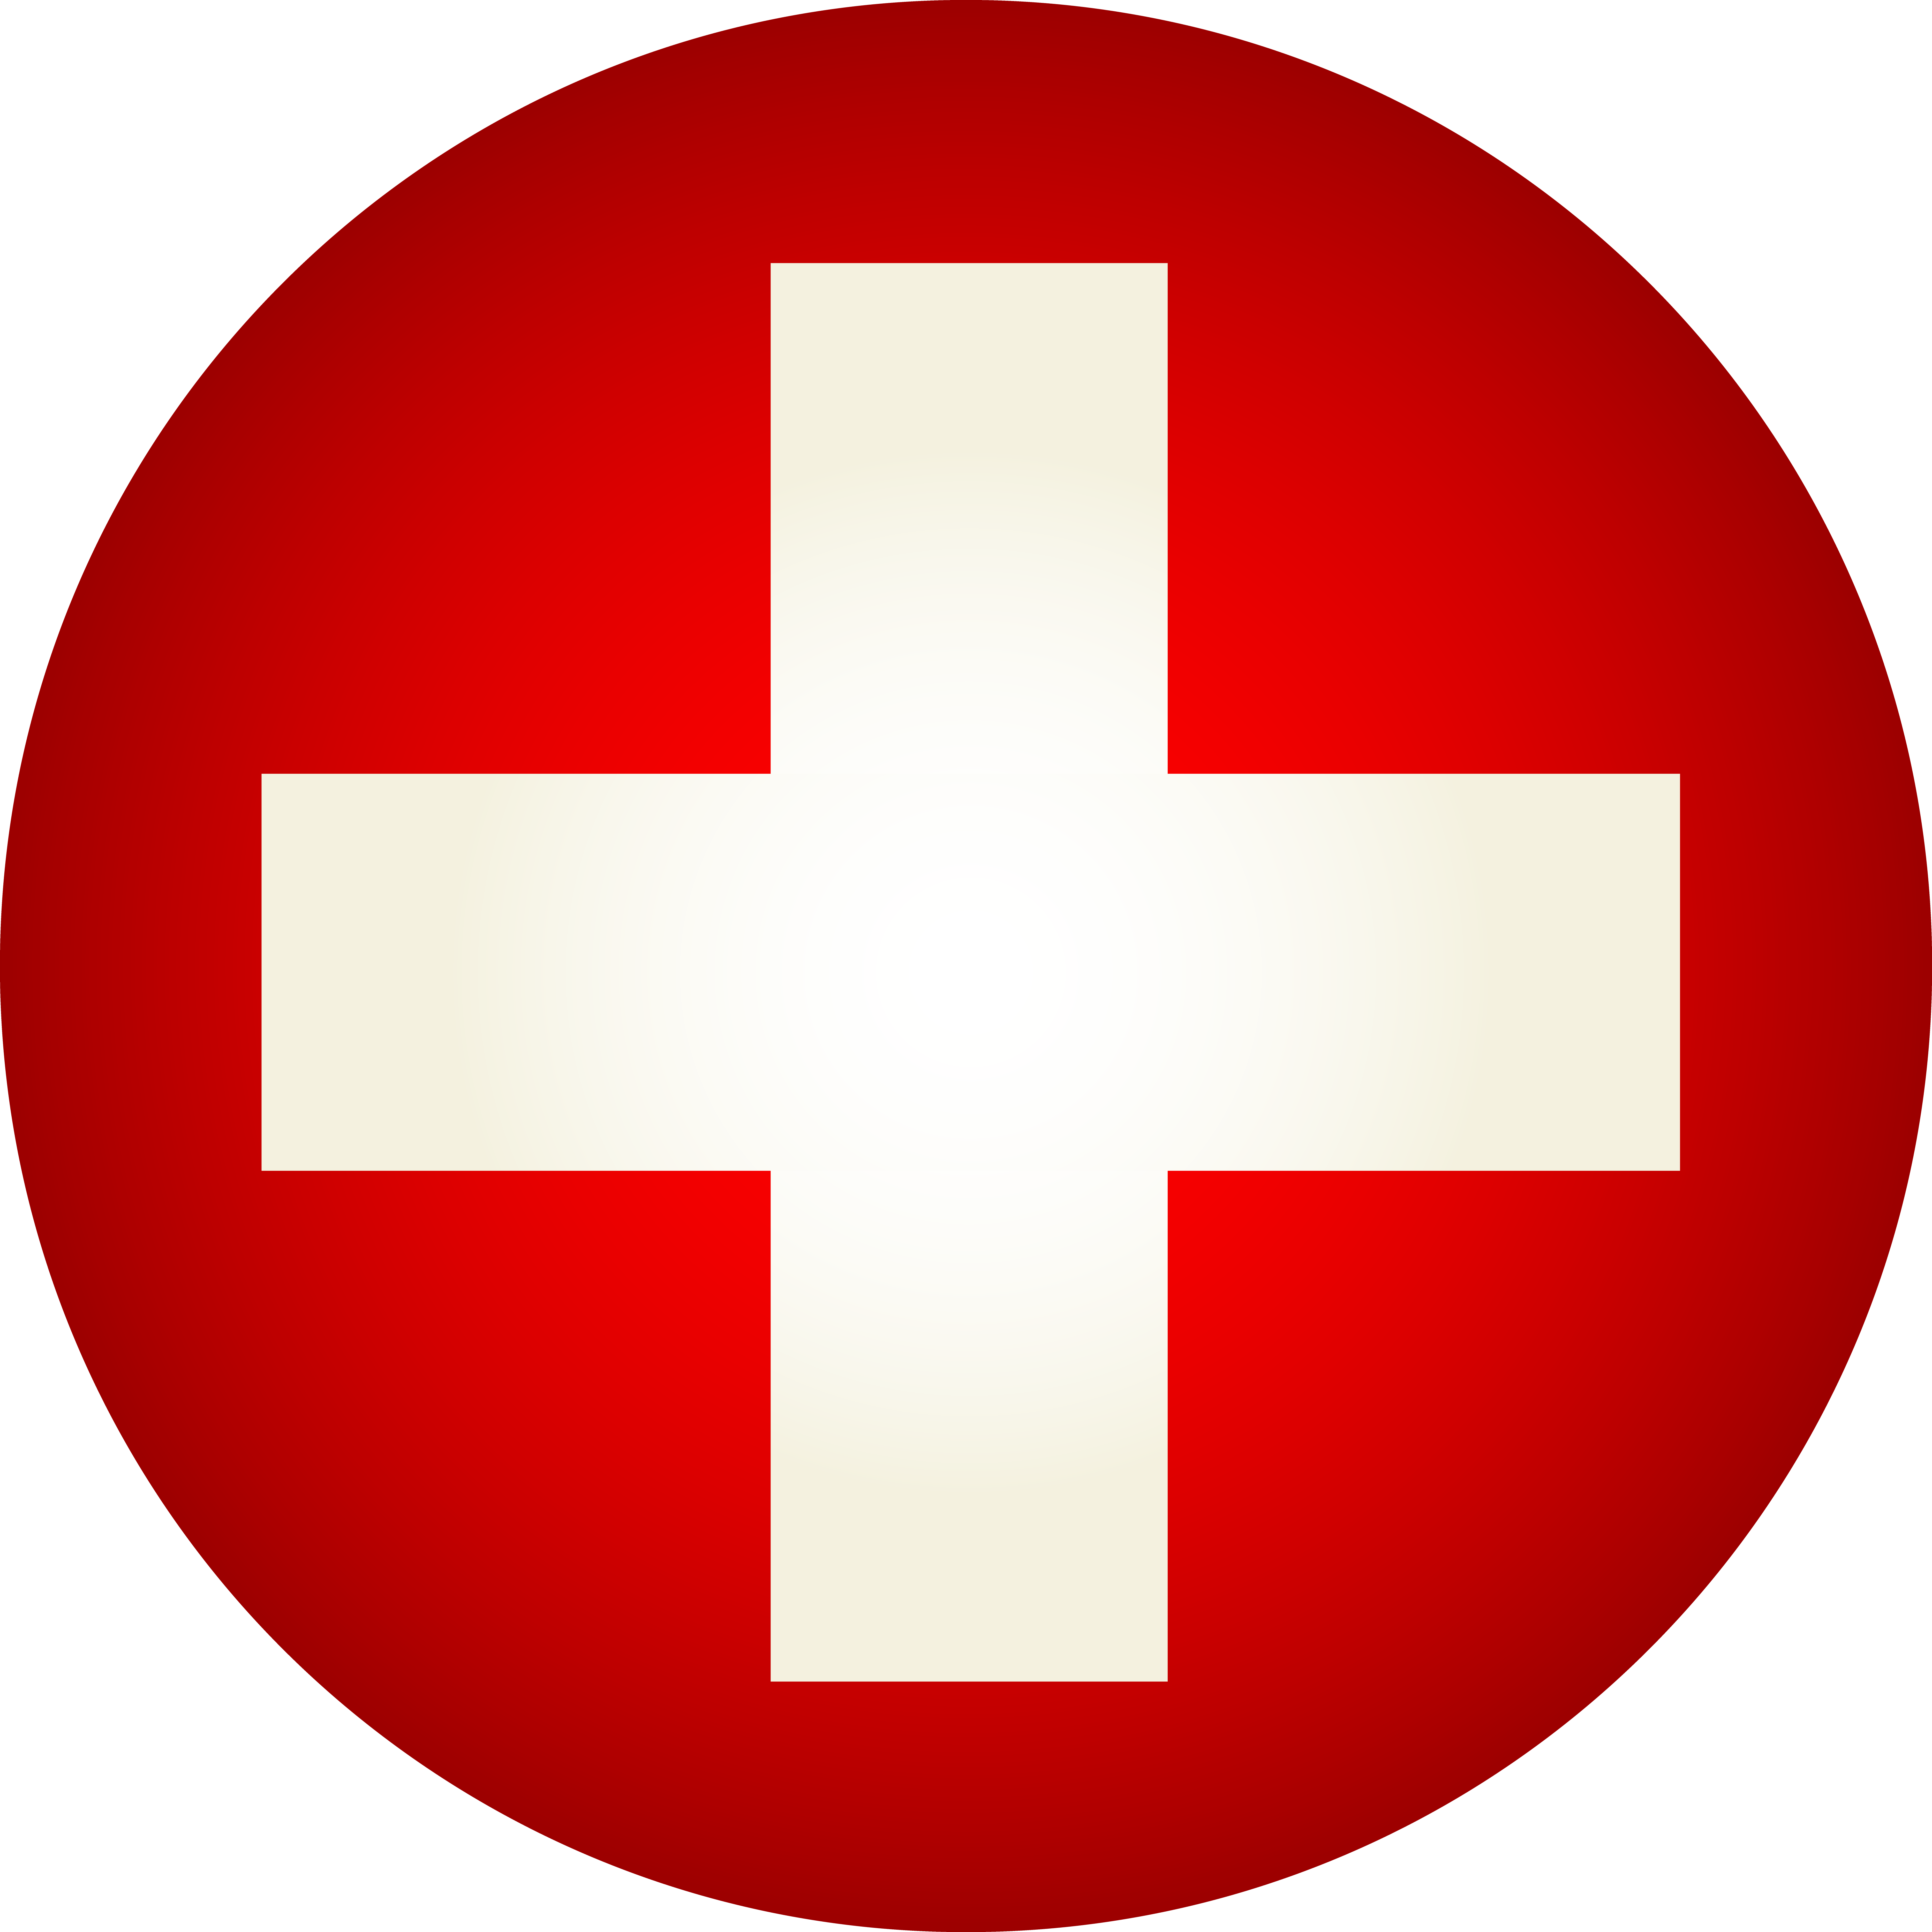 Red Cross clipart hospital symbol Free White Red Design Simple